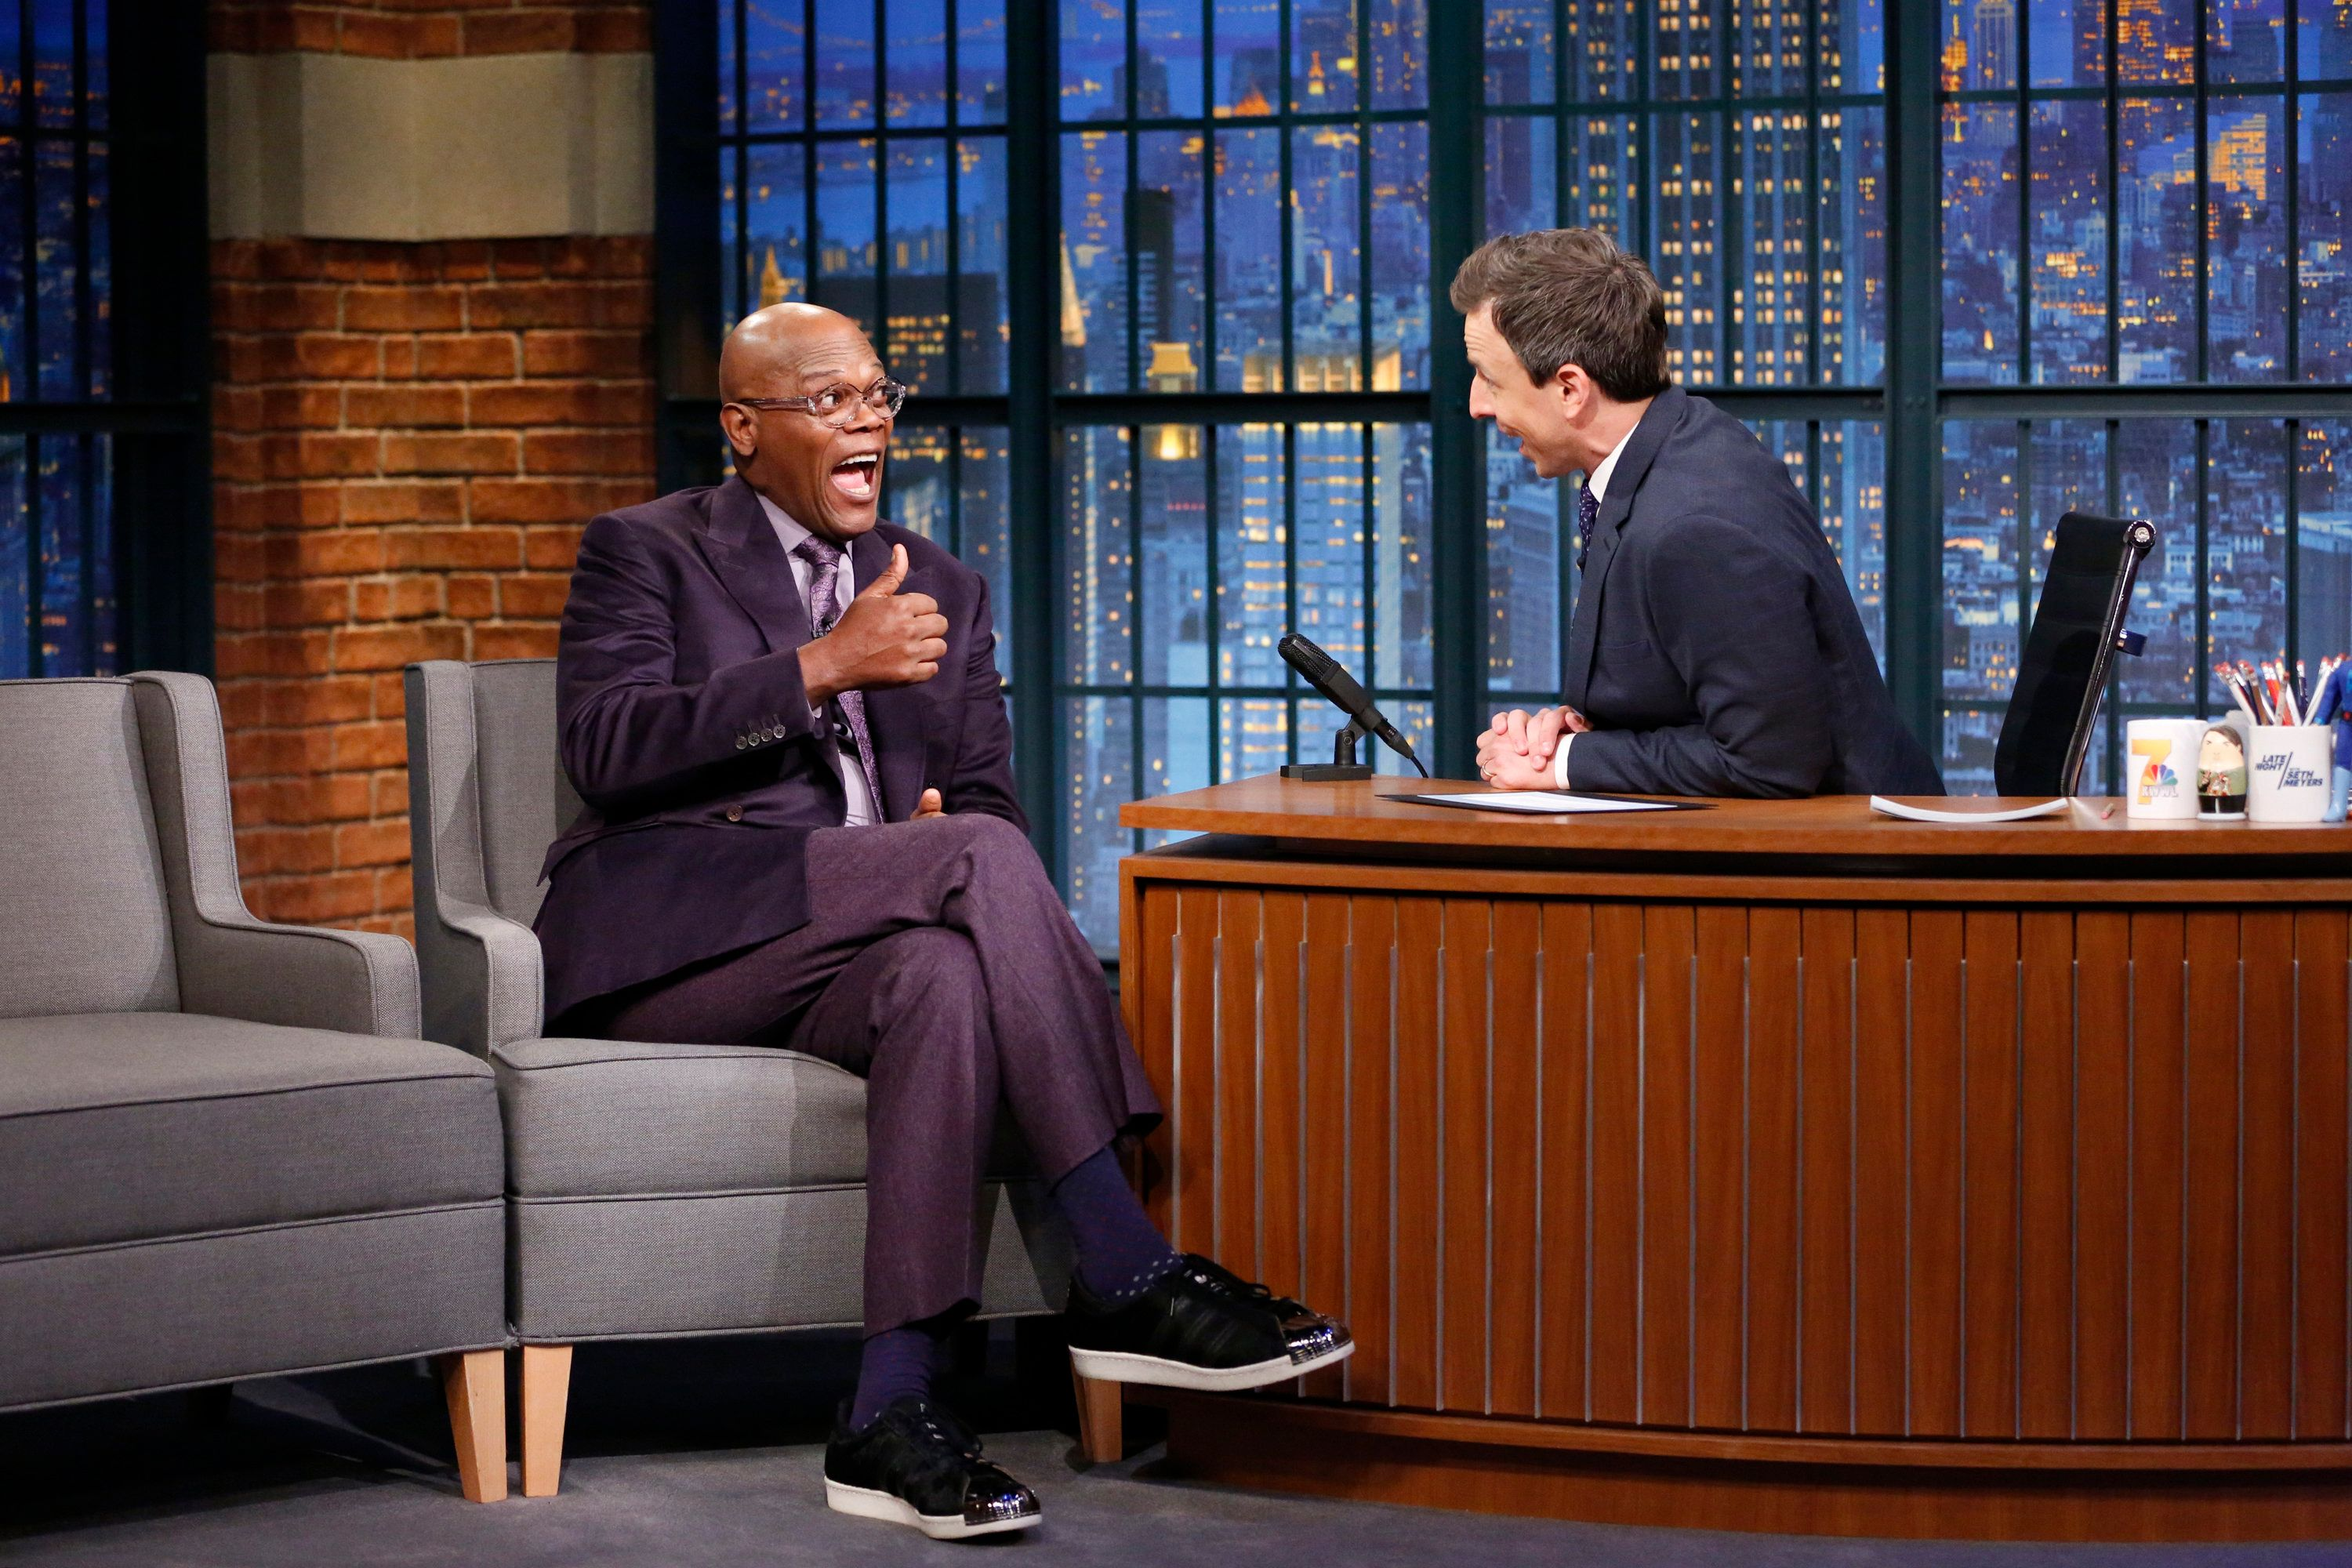 LATE NIGHT WITH SETH MEYERS -- Episode 306 -- Pictured: (l-r) Actor Samuel L. Jackson during an interview with host Seth Meyers on January 5, 2016 -- (Photo by: Jon Pack/NBC/NBCU Photo Bank via Getty Images)